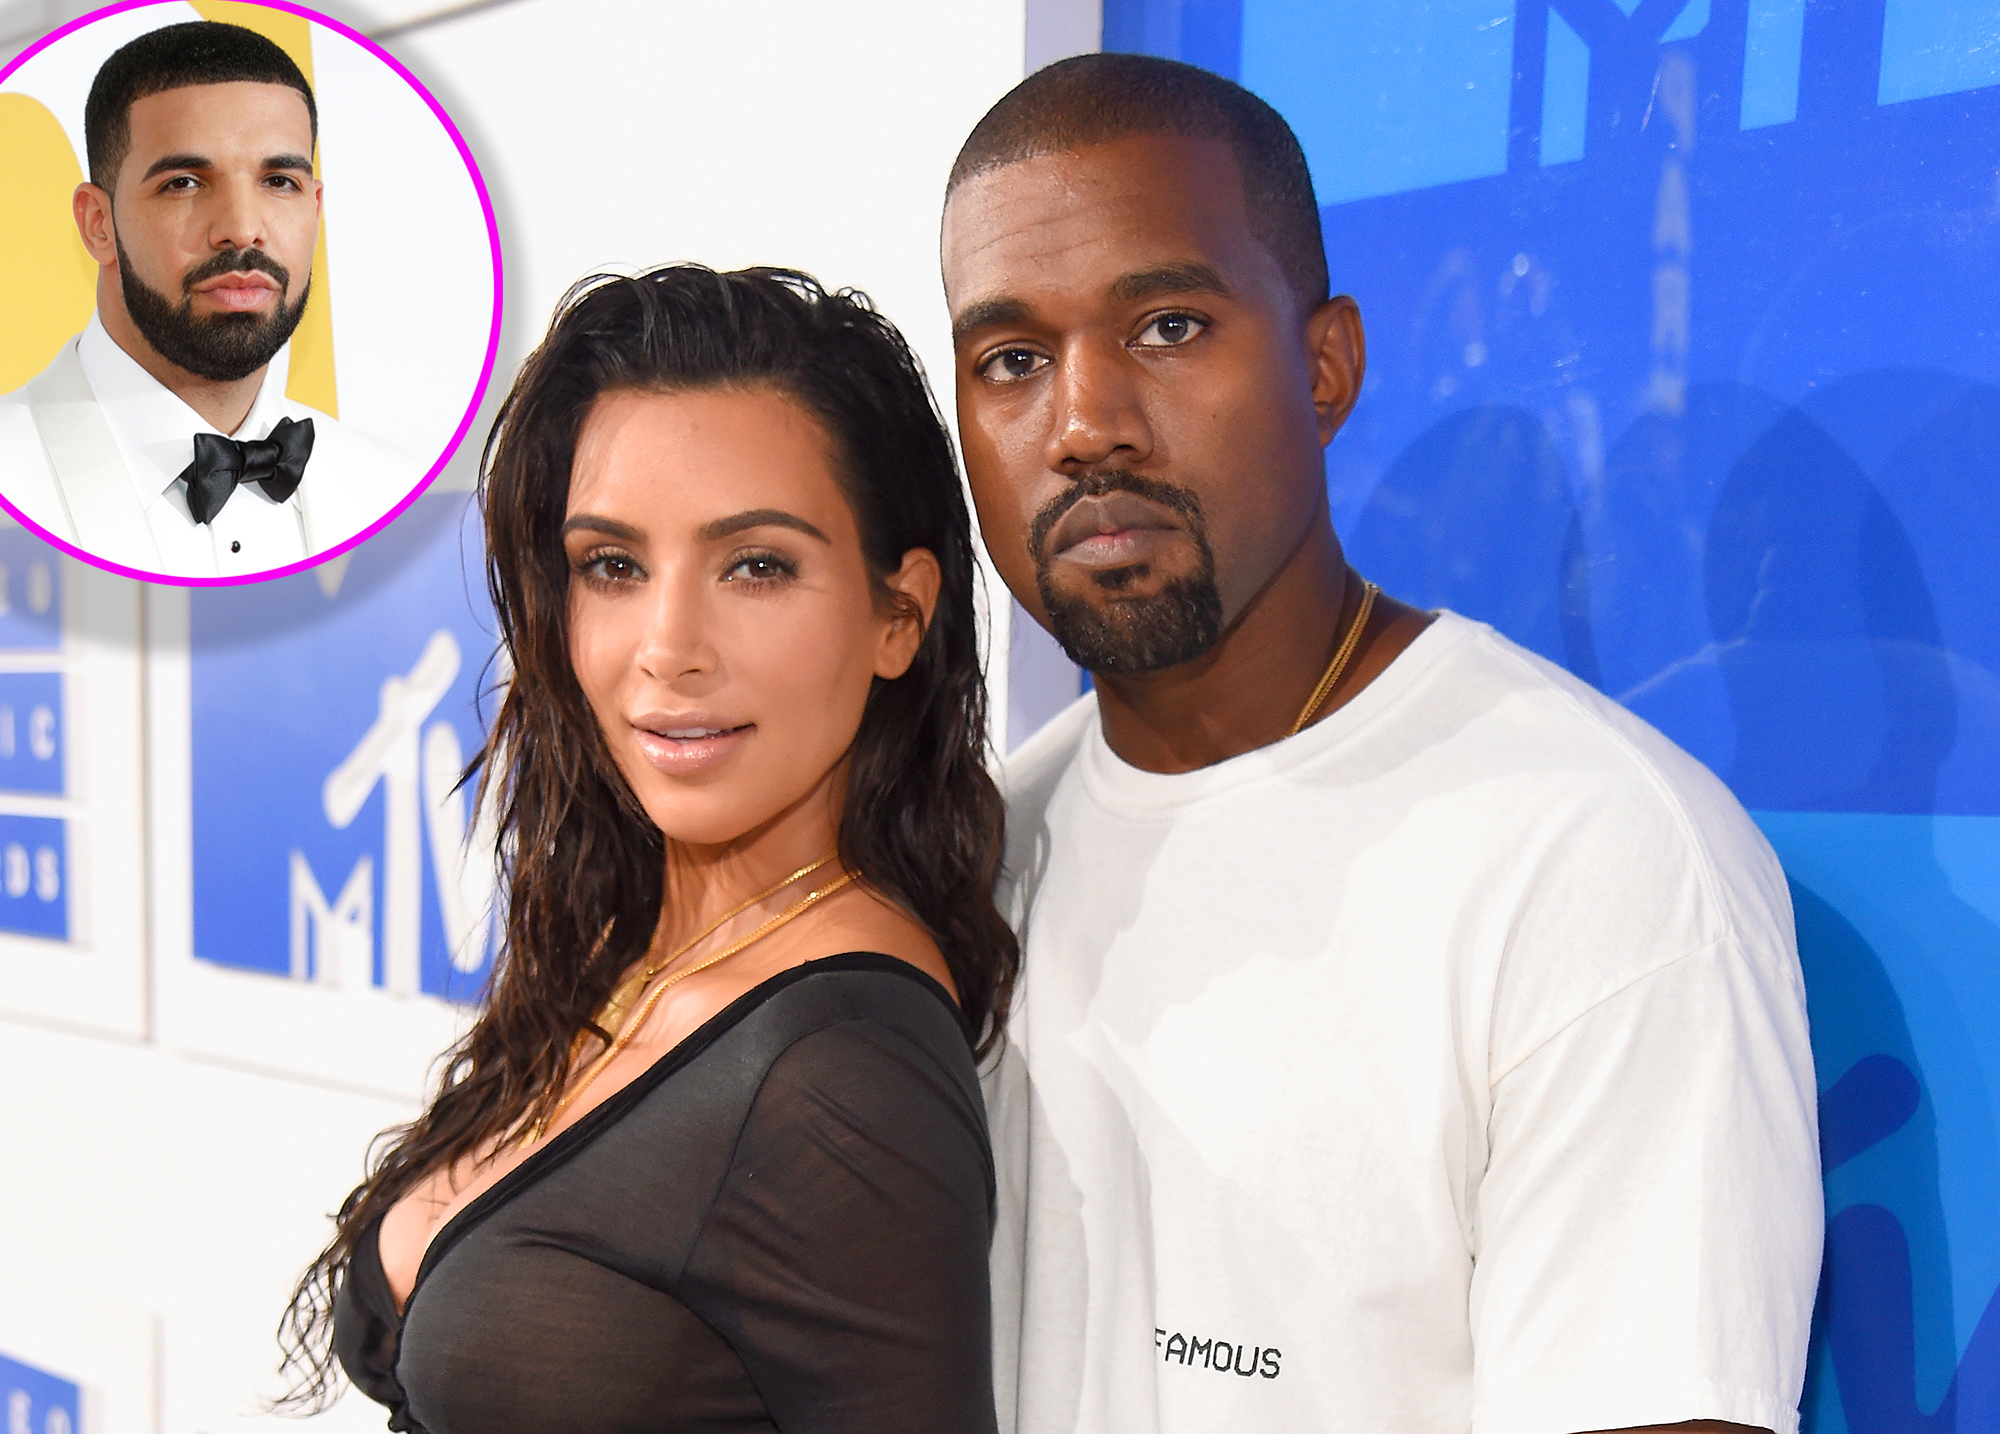 afadfdad76a6 Kanye West Calls Out Drake for Following Kim Kardashian on Instagram: 'The  Most F—ked Up Thing of All'